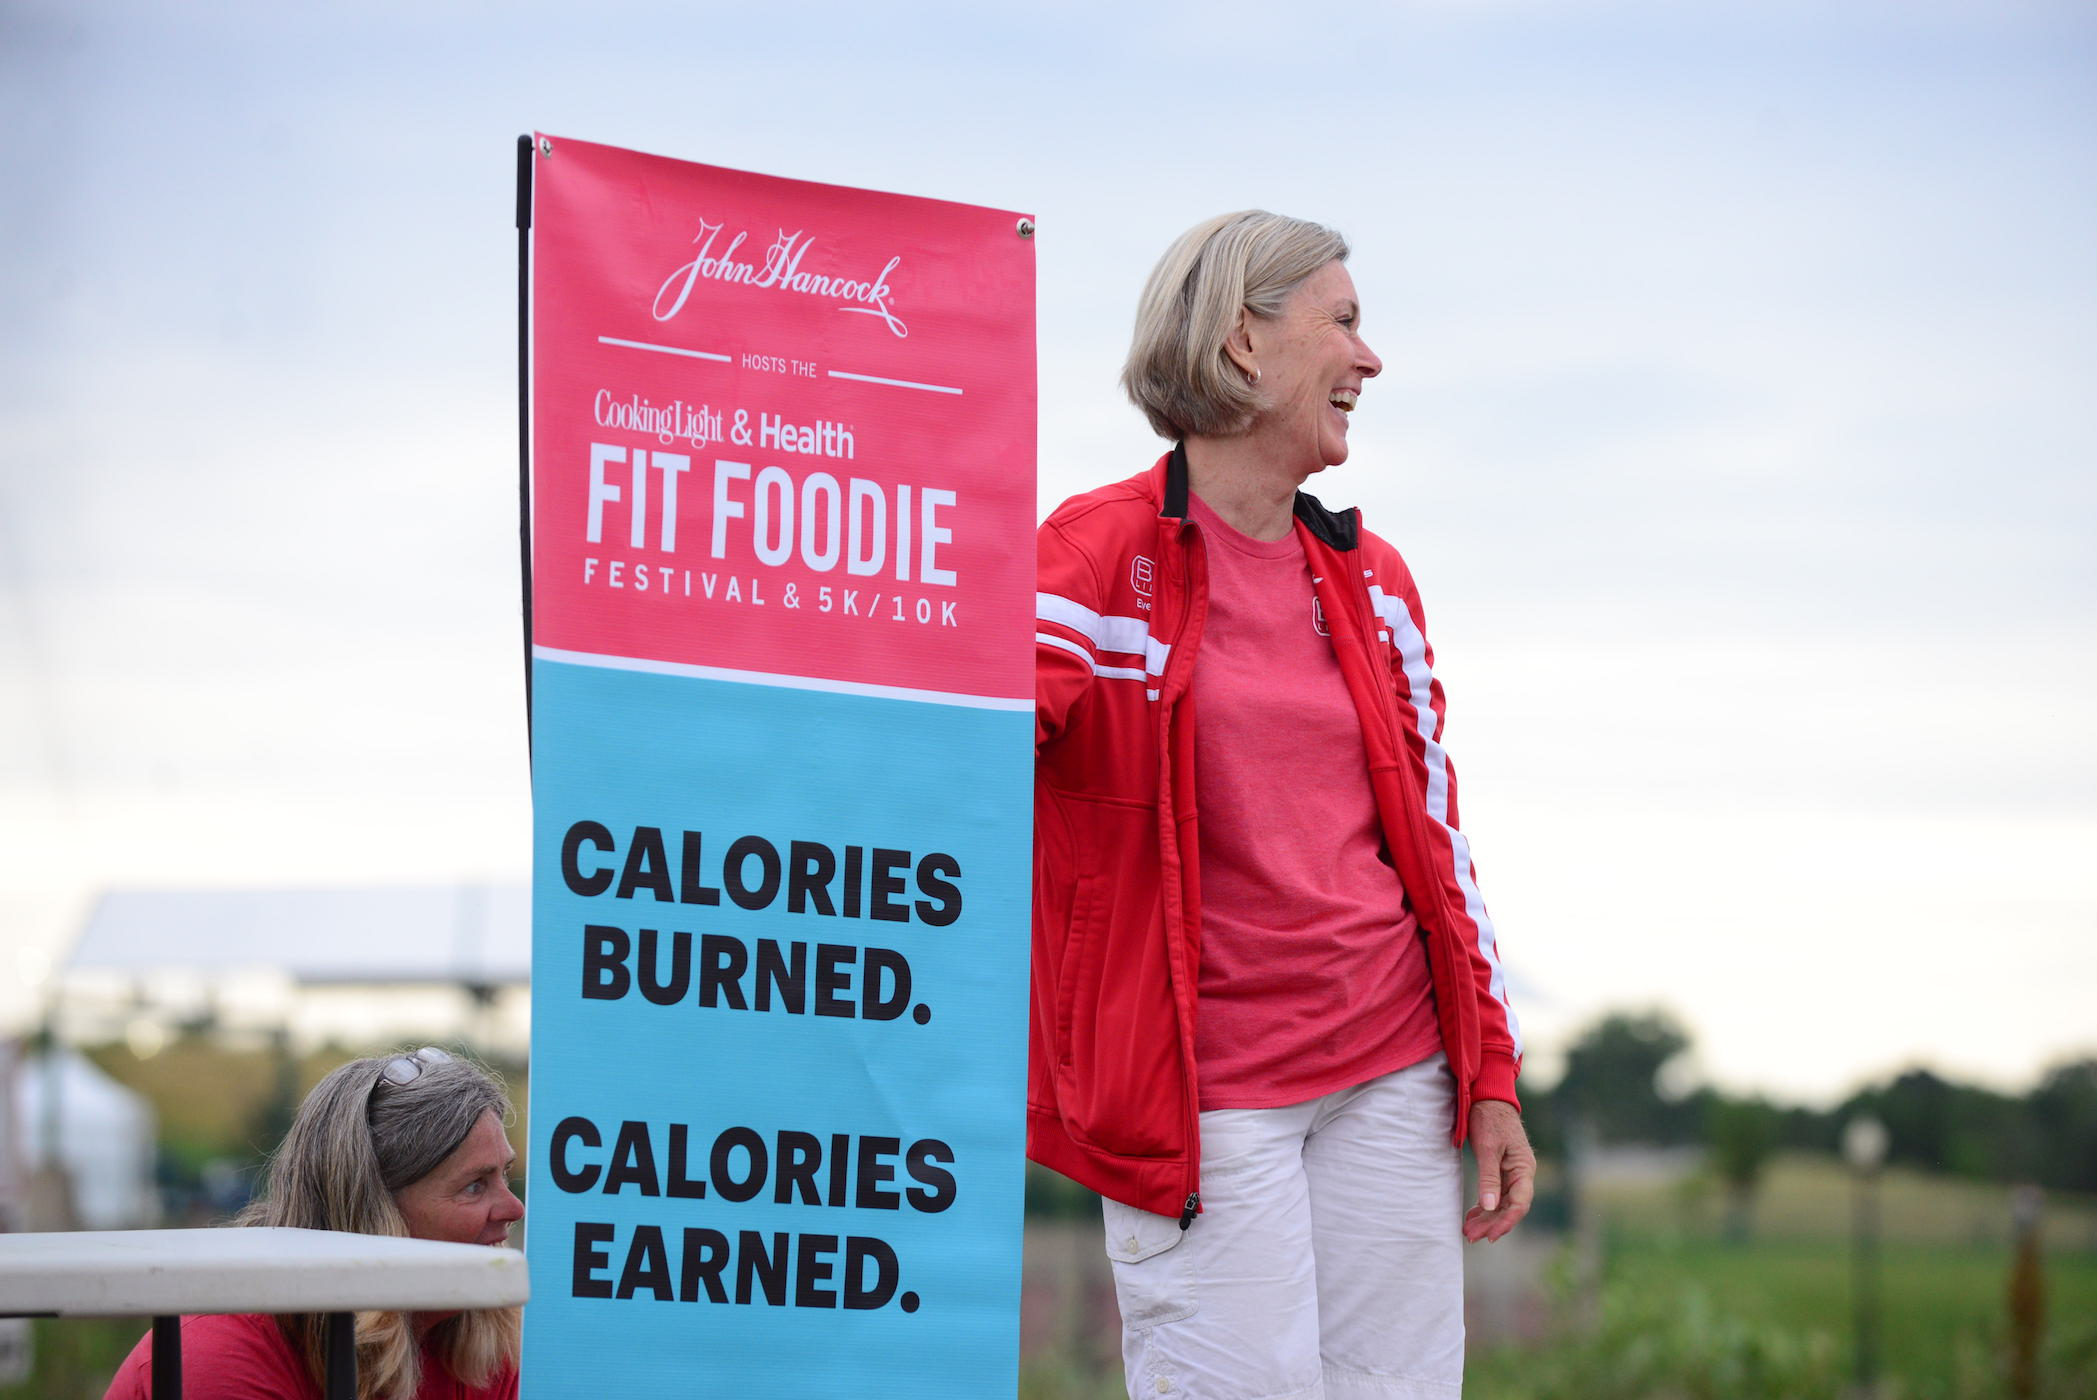 Fit Foodie 5K + 10K